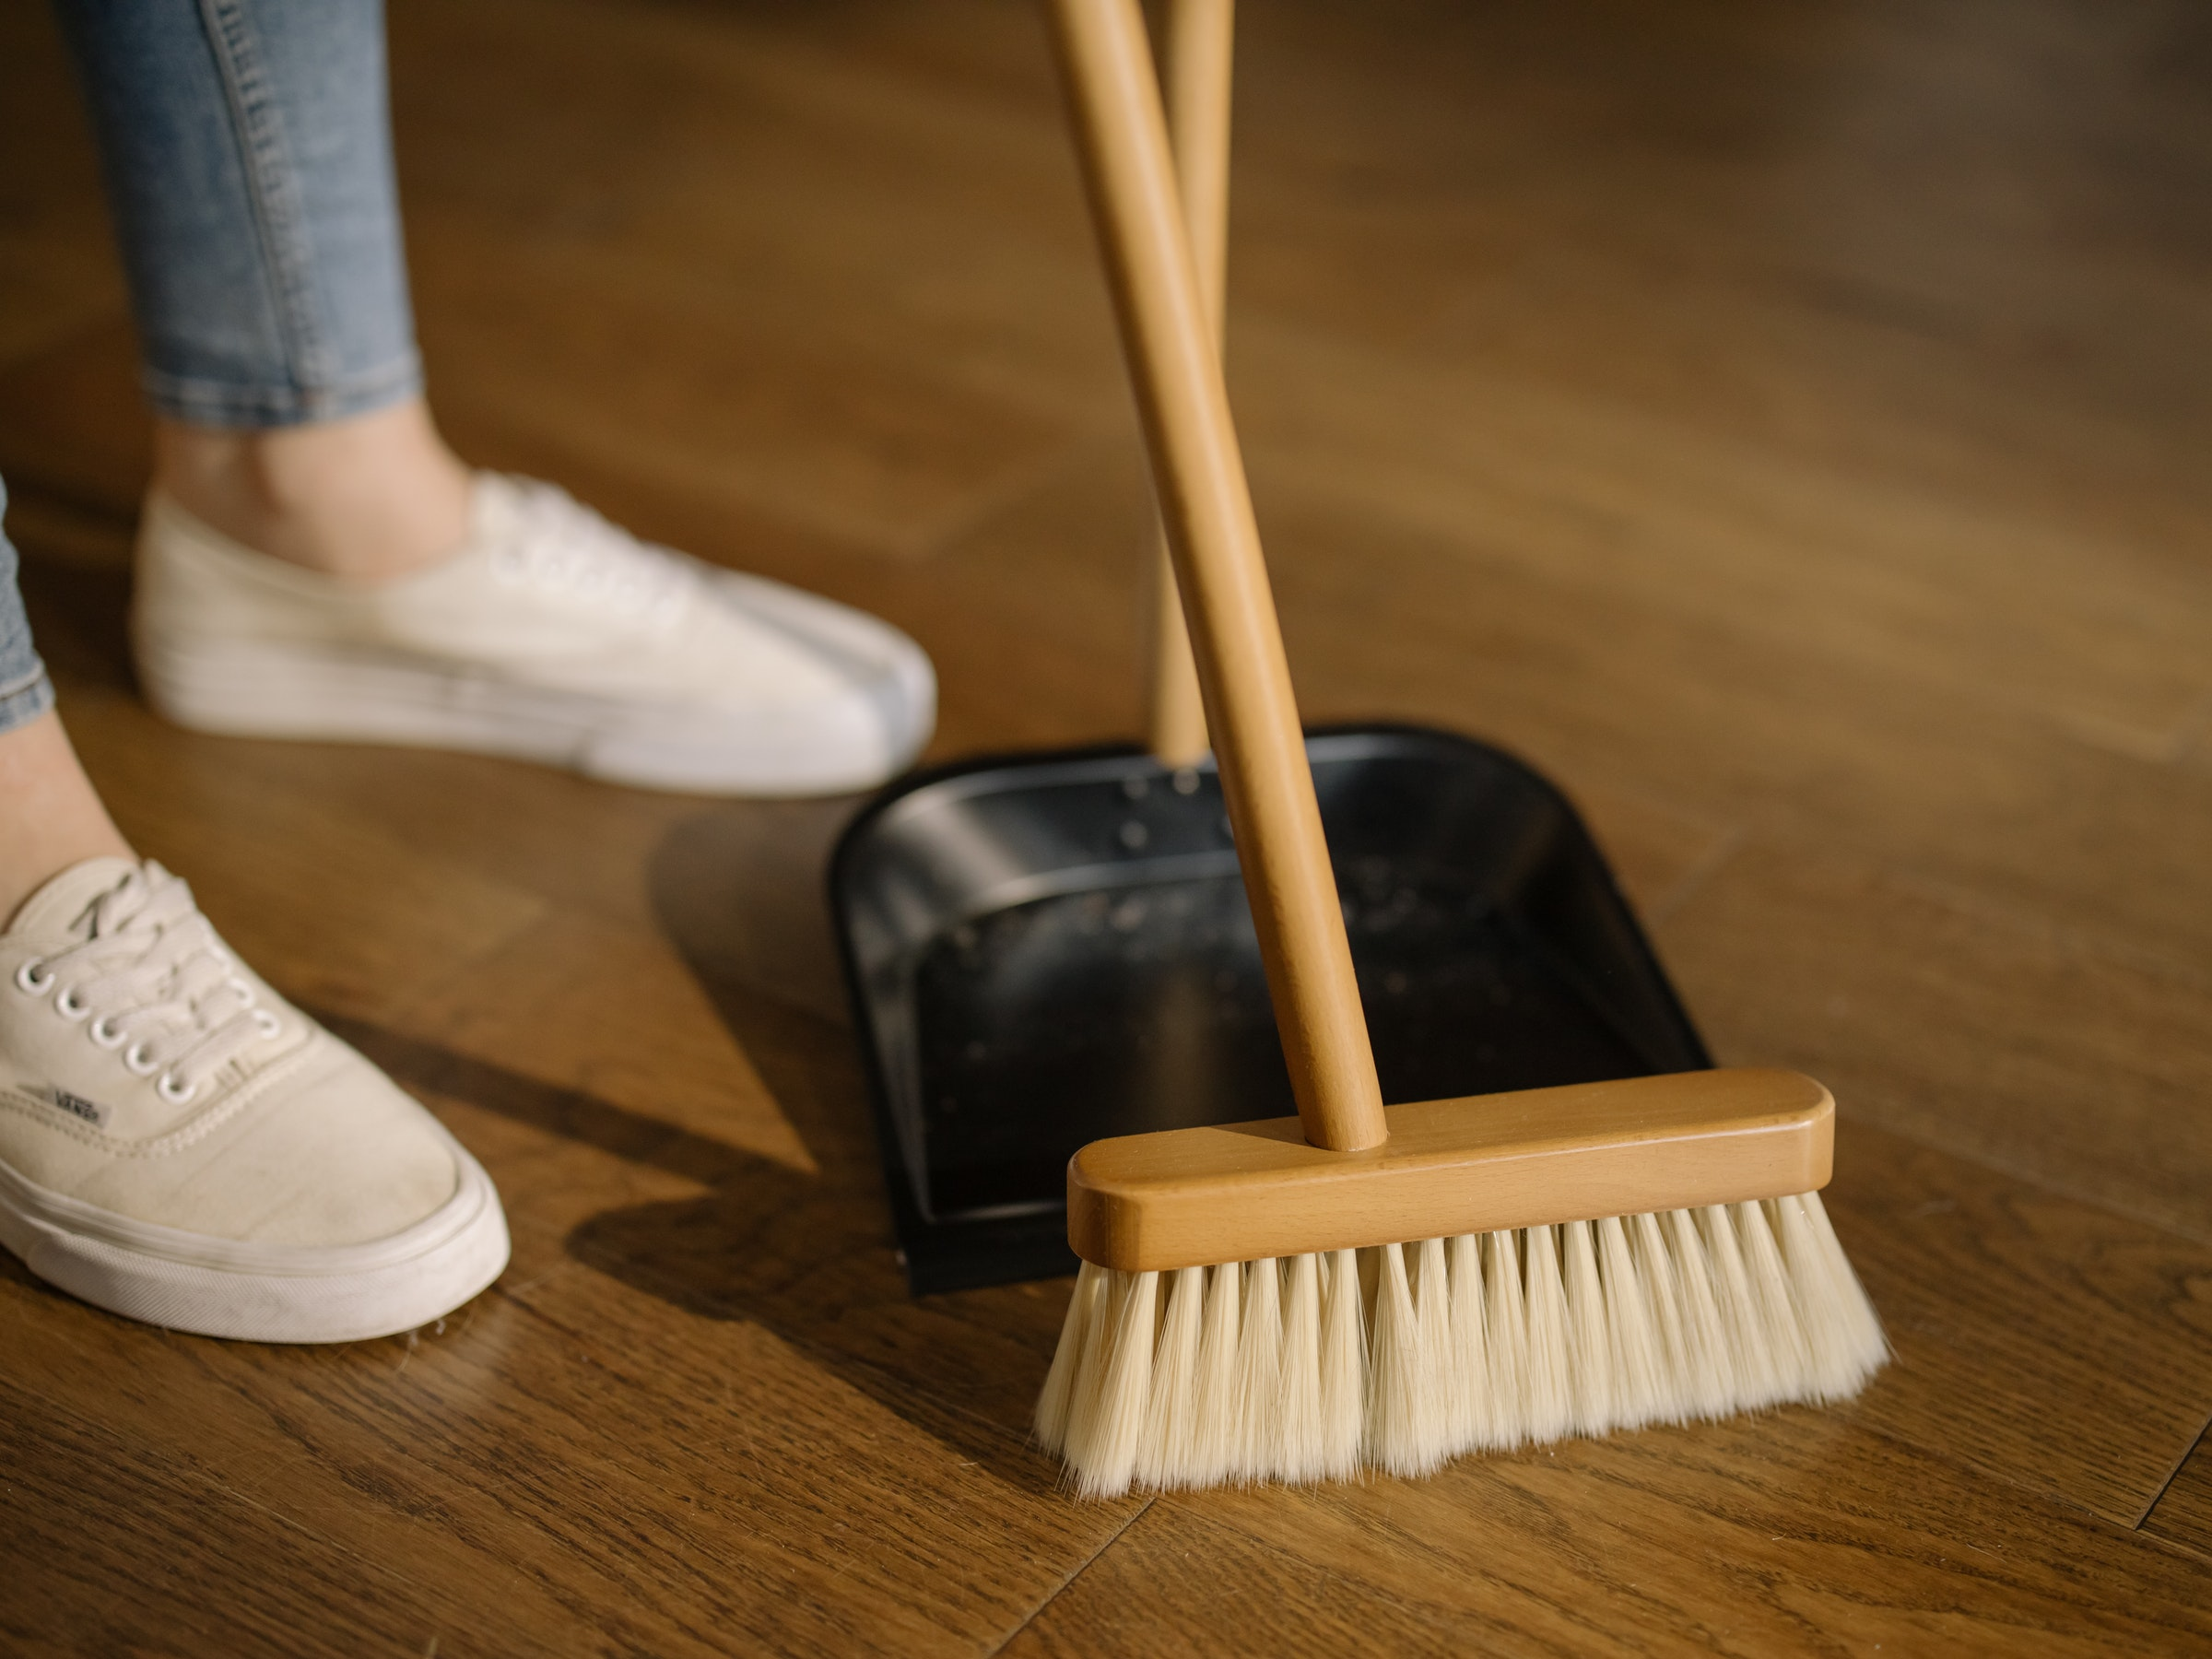 Professional Cleaners Give Their Top Tips for Cleaning When Moving